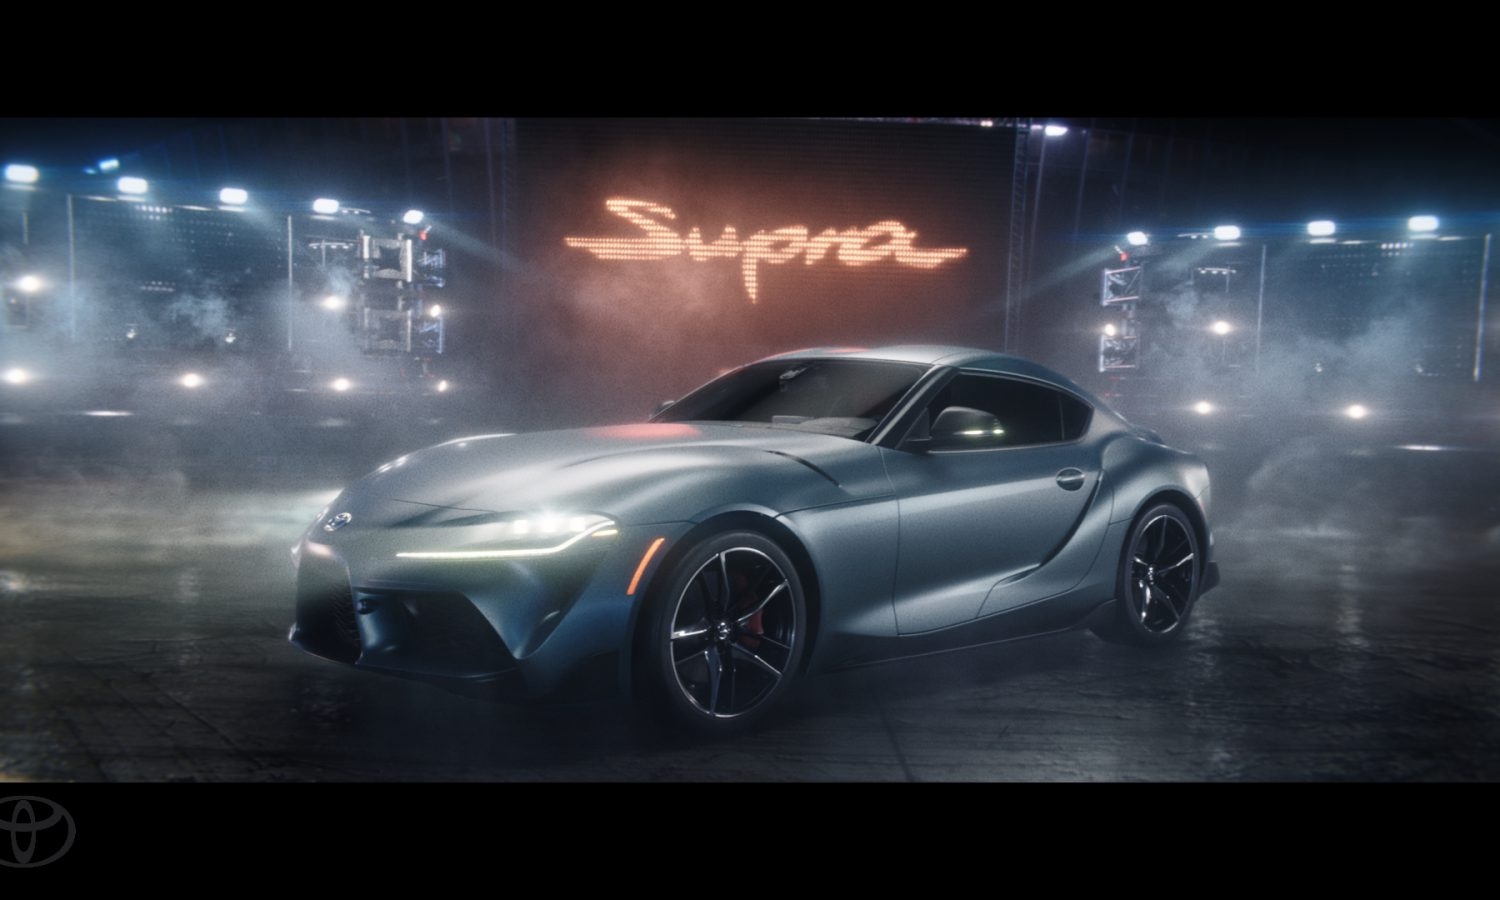 2020 Toyota Supra Gets Into the Big Game With Commercial Debut